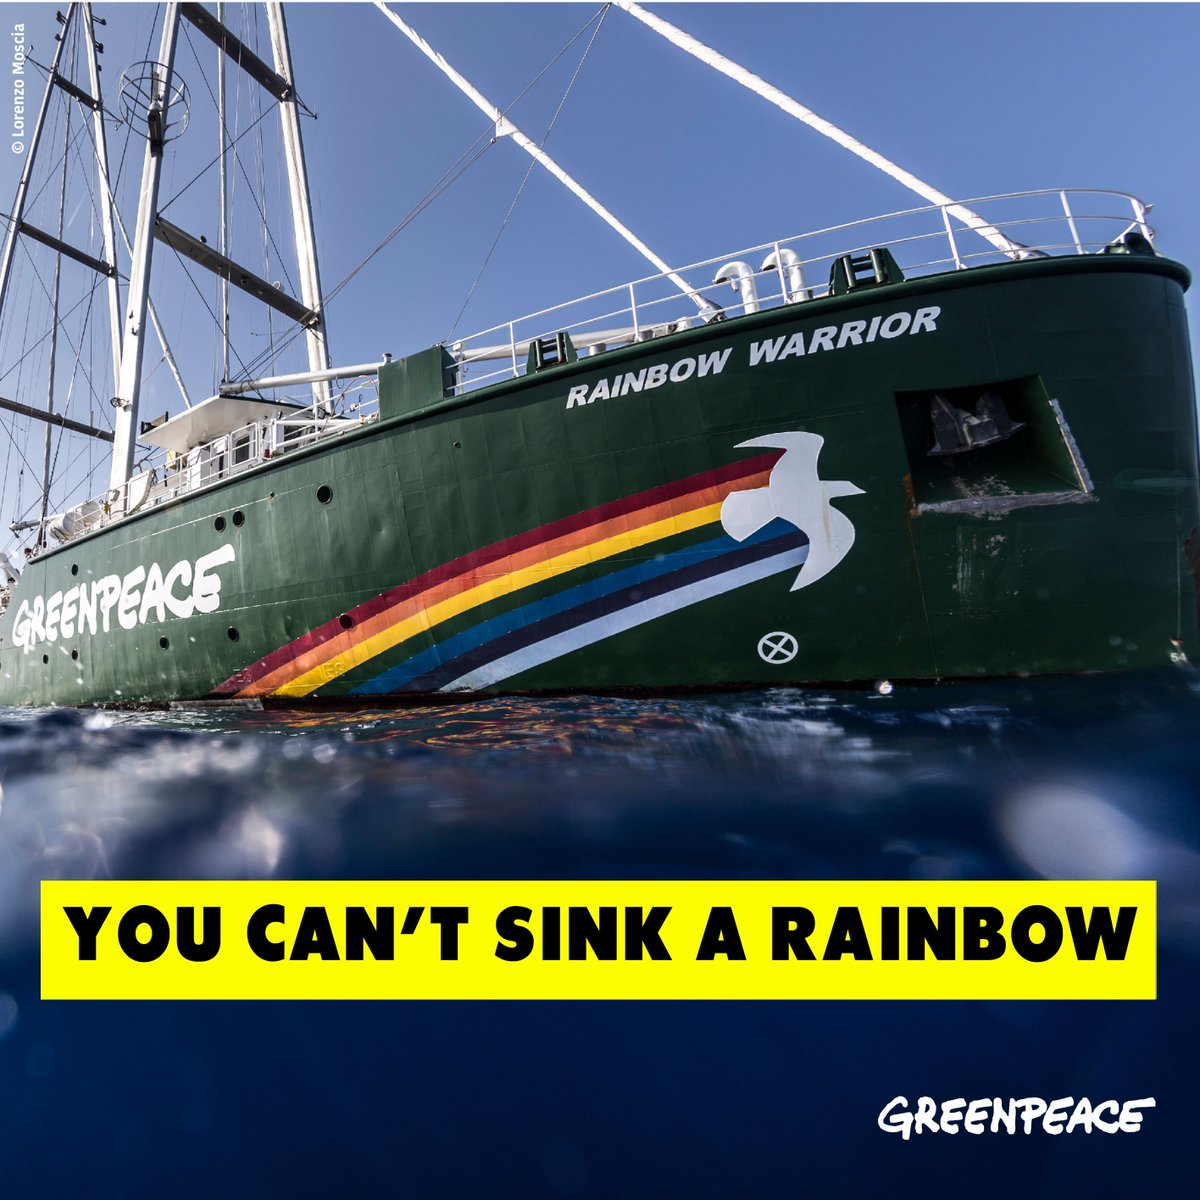 the bombing of the rainbow warrior